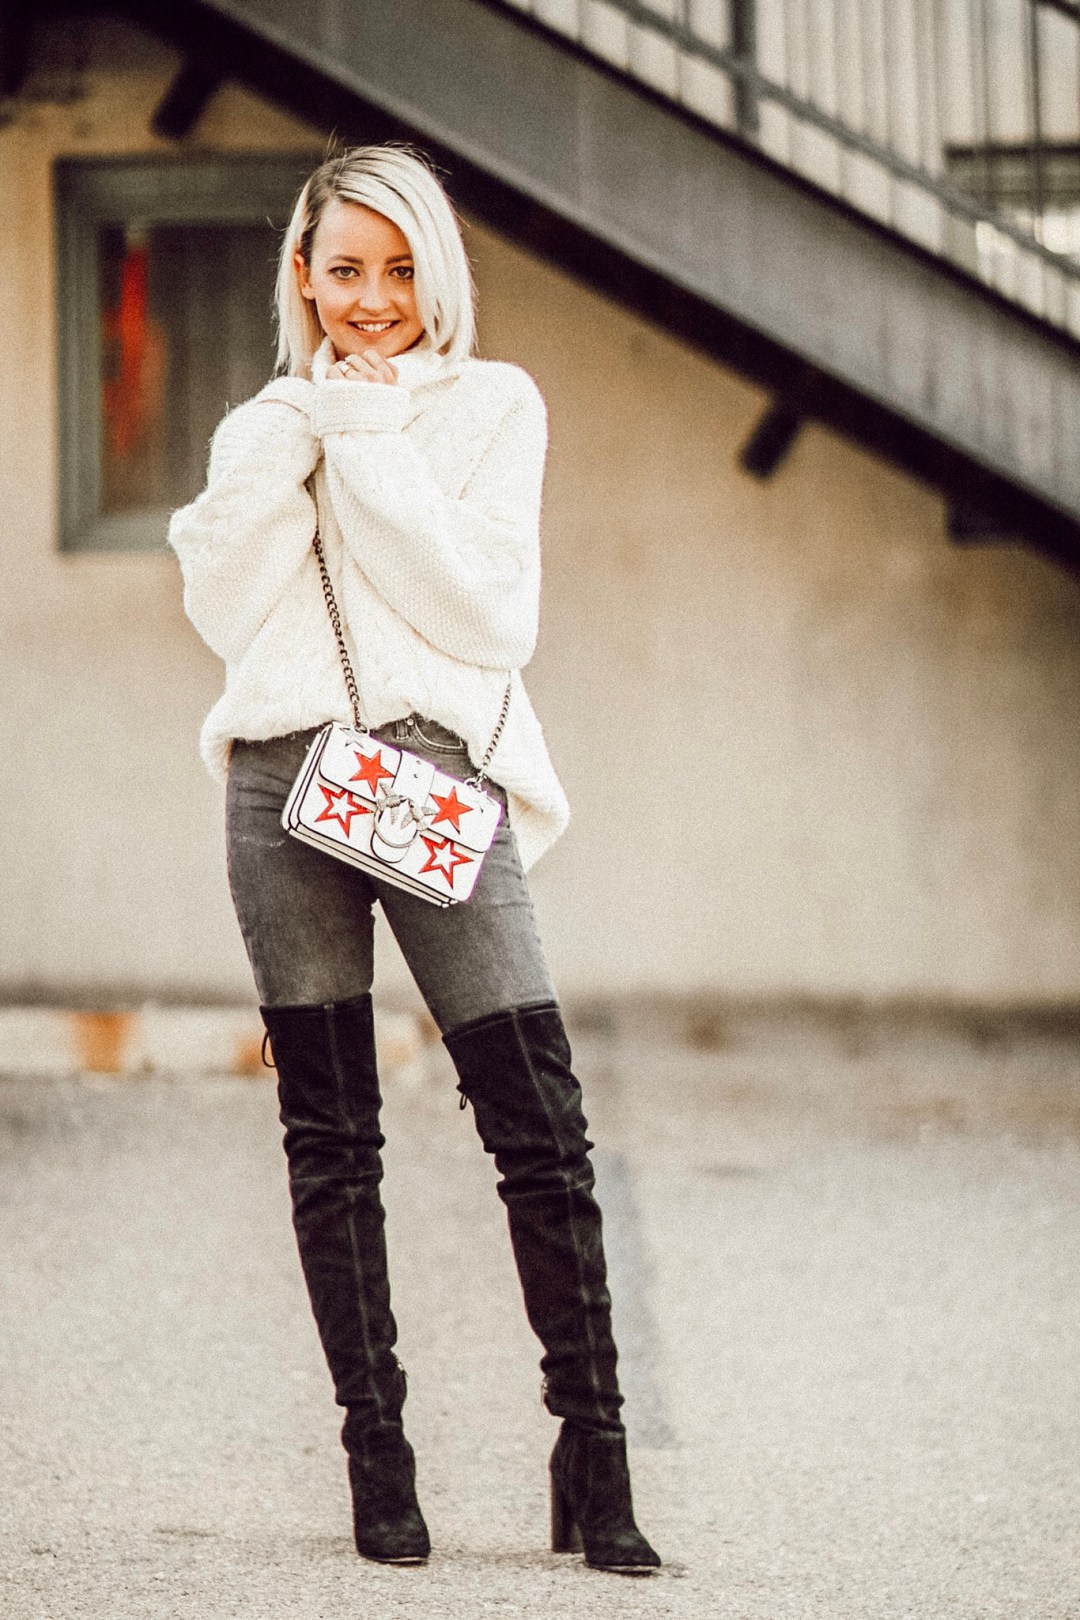 Alena Gidenko of modaprints.com shares her favorite cozy sweaters under $50